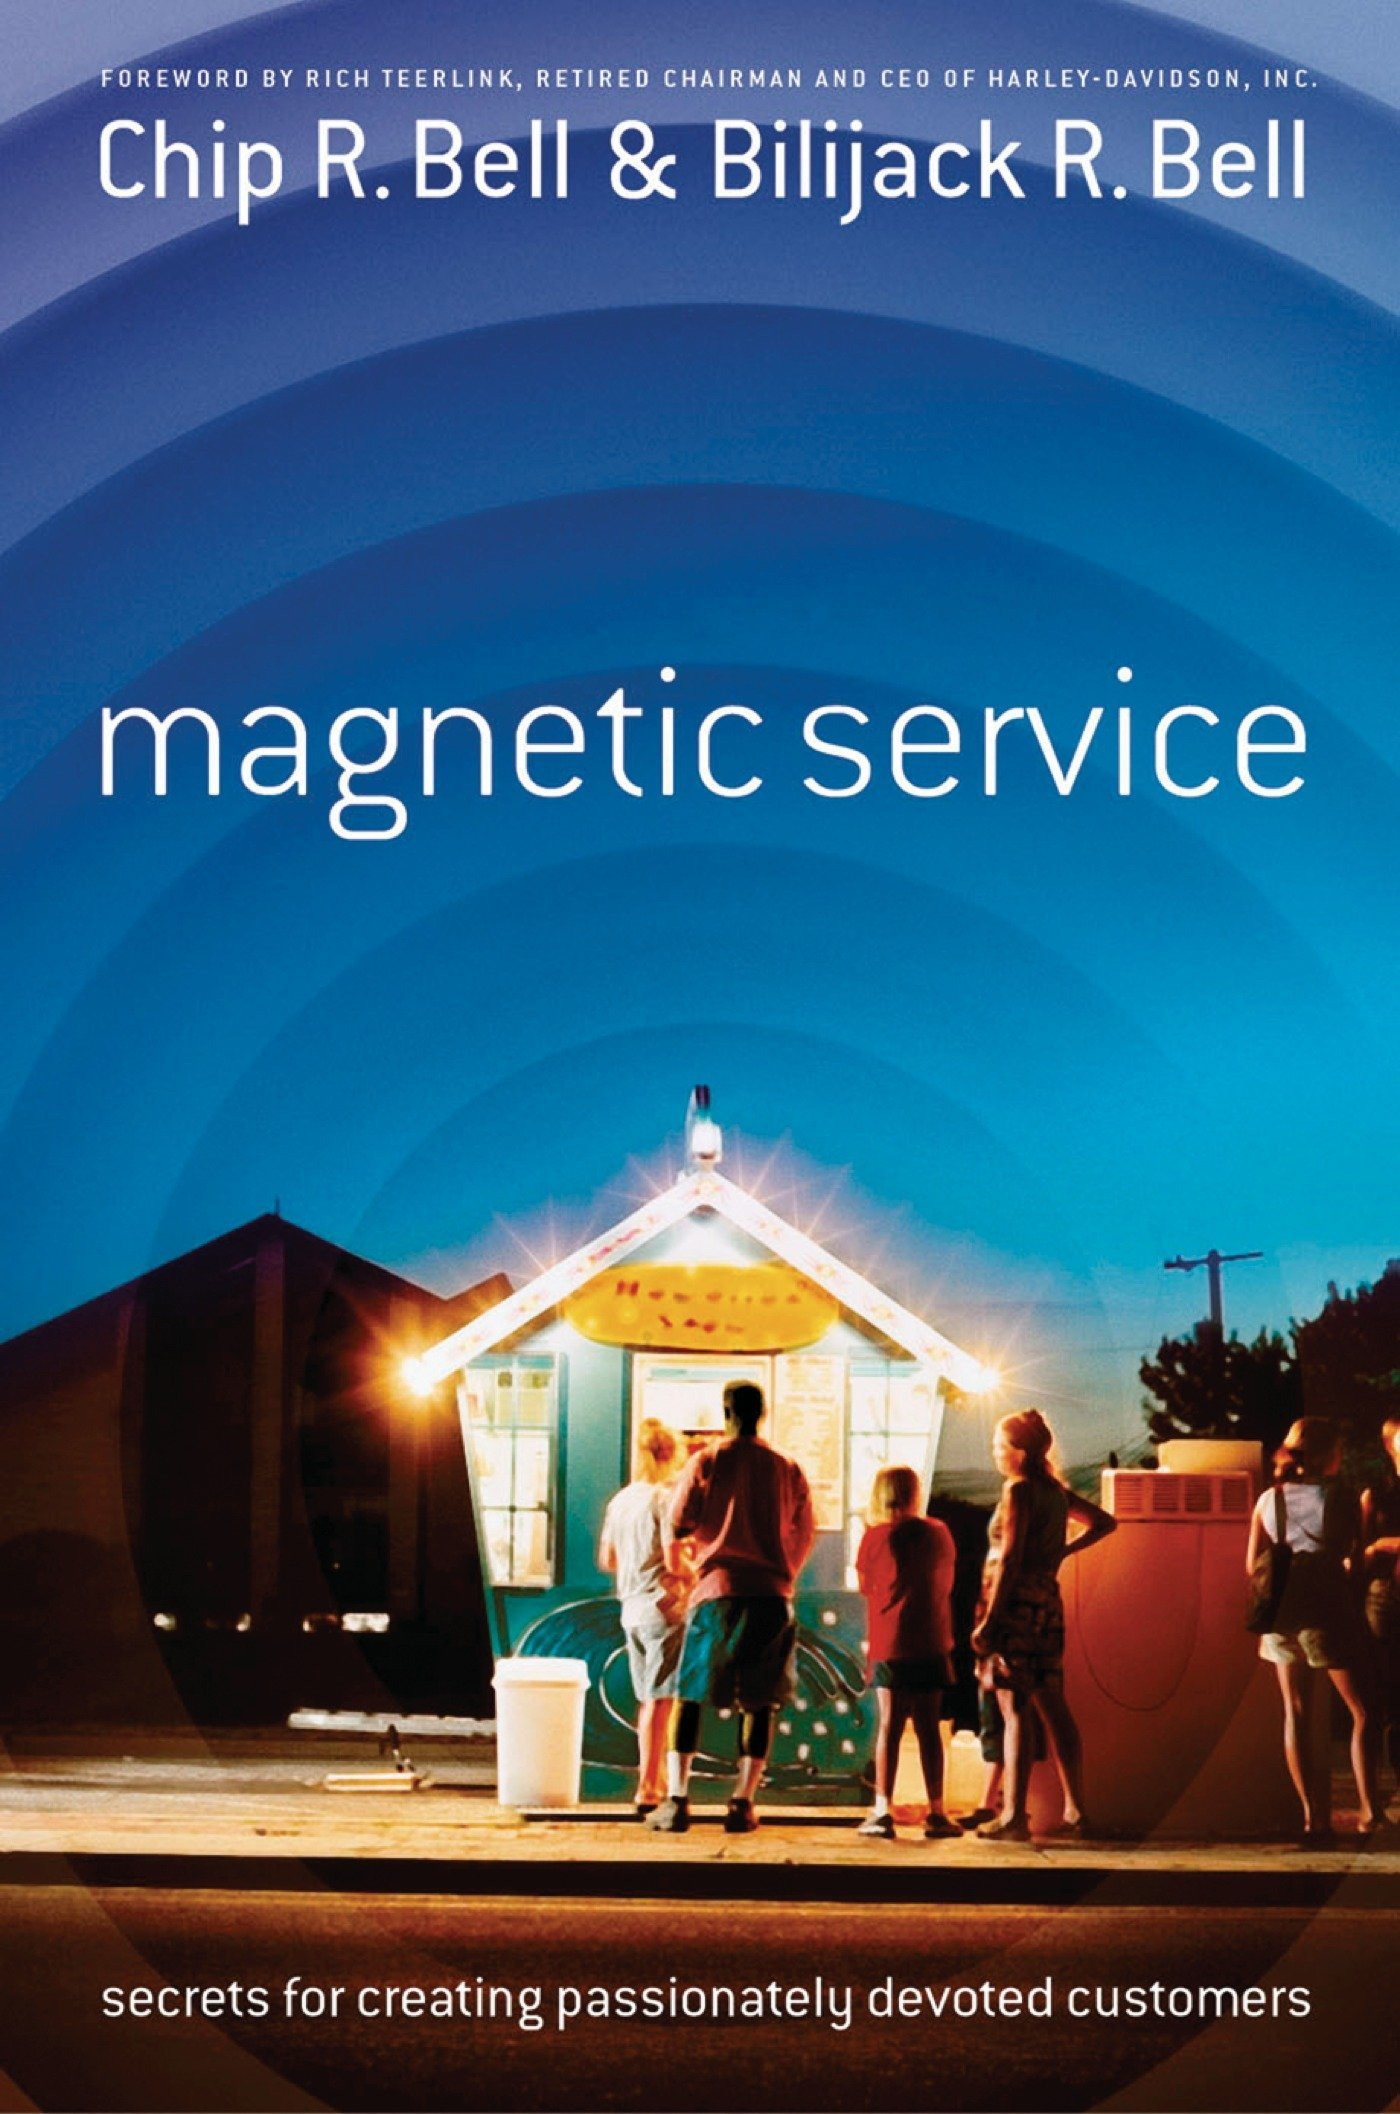 Magnetic Service: Secrets for Creating Passionately Devoted Customers